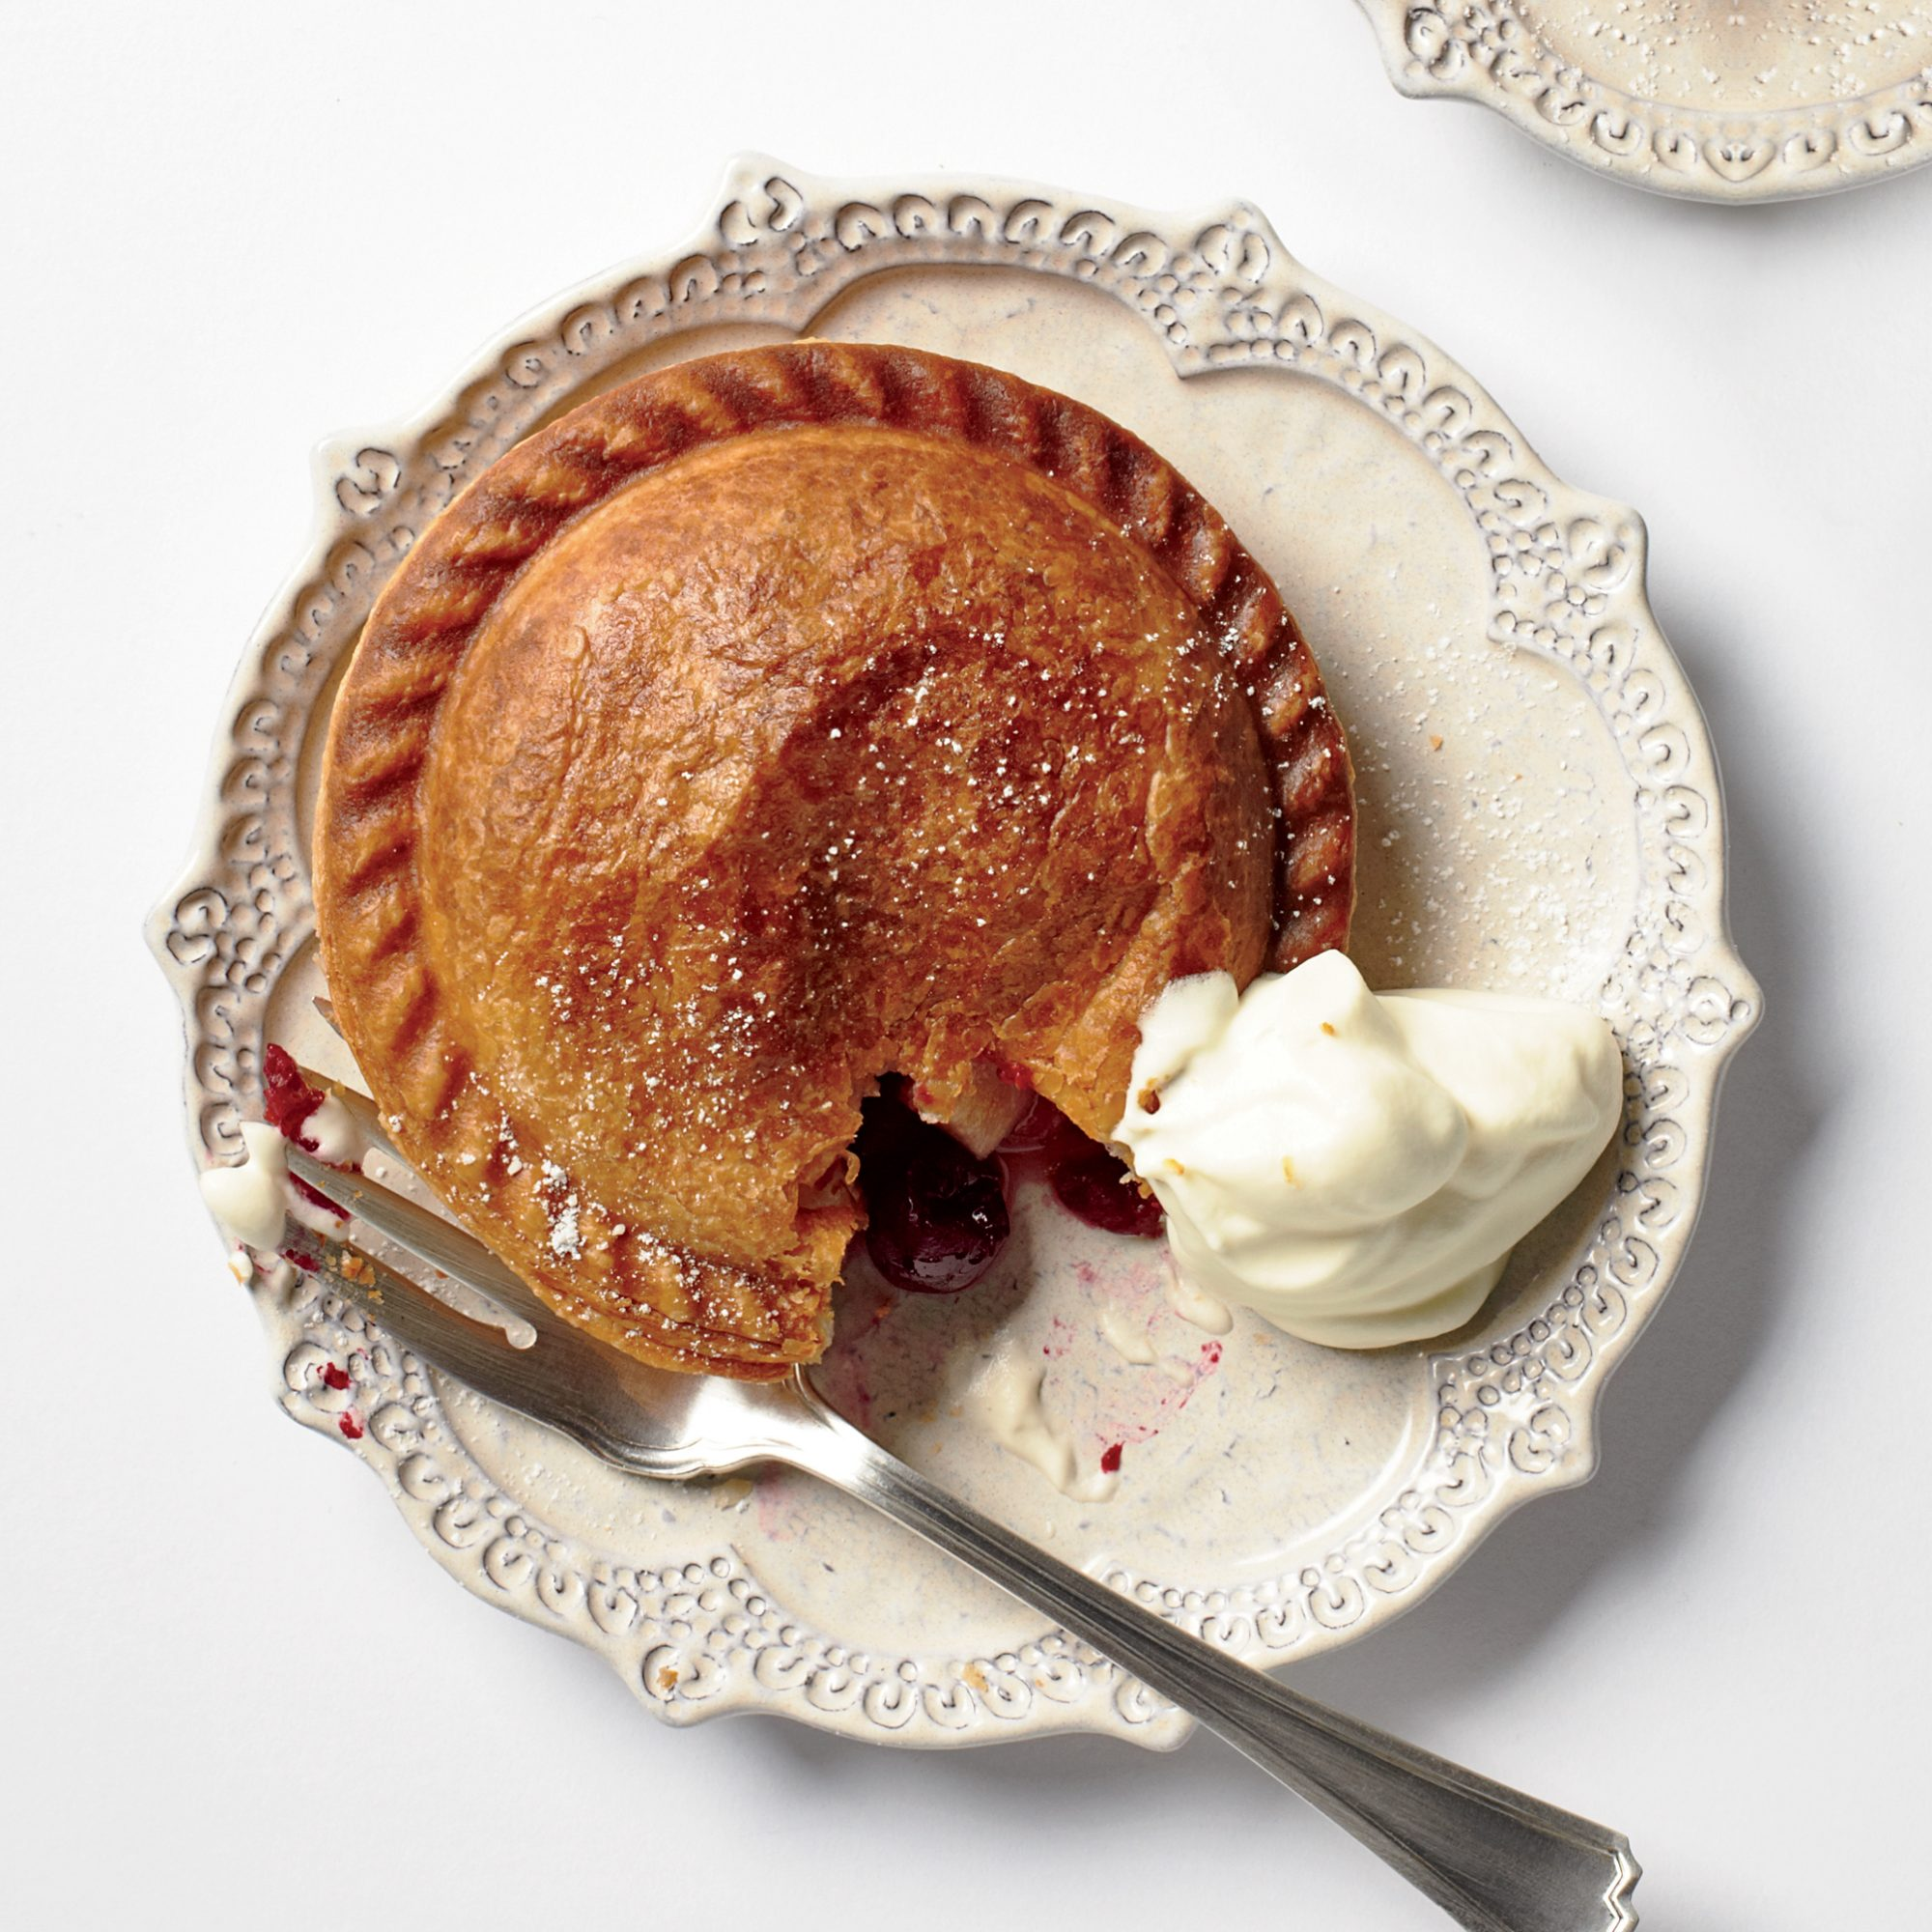 Thanksgiving Recipes for Kids Like Pear-Cranberry Hand Pies